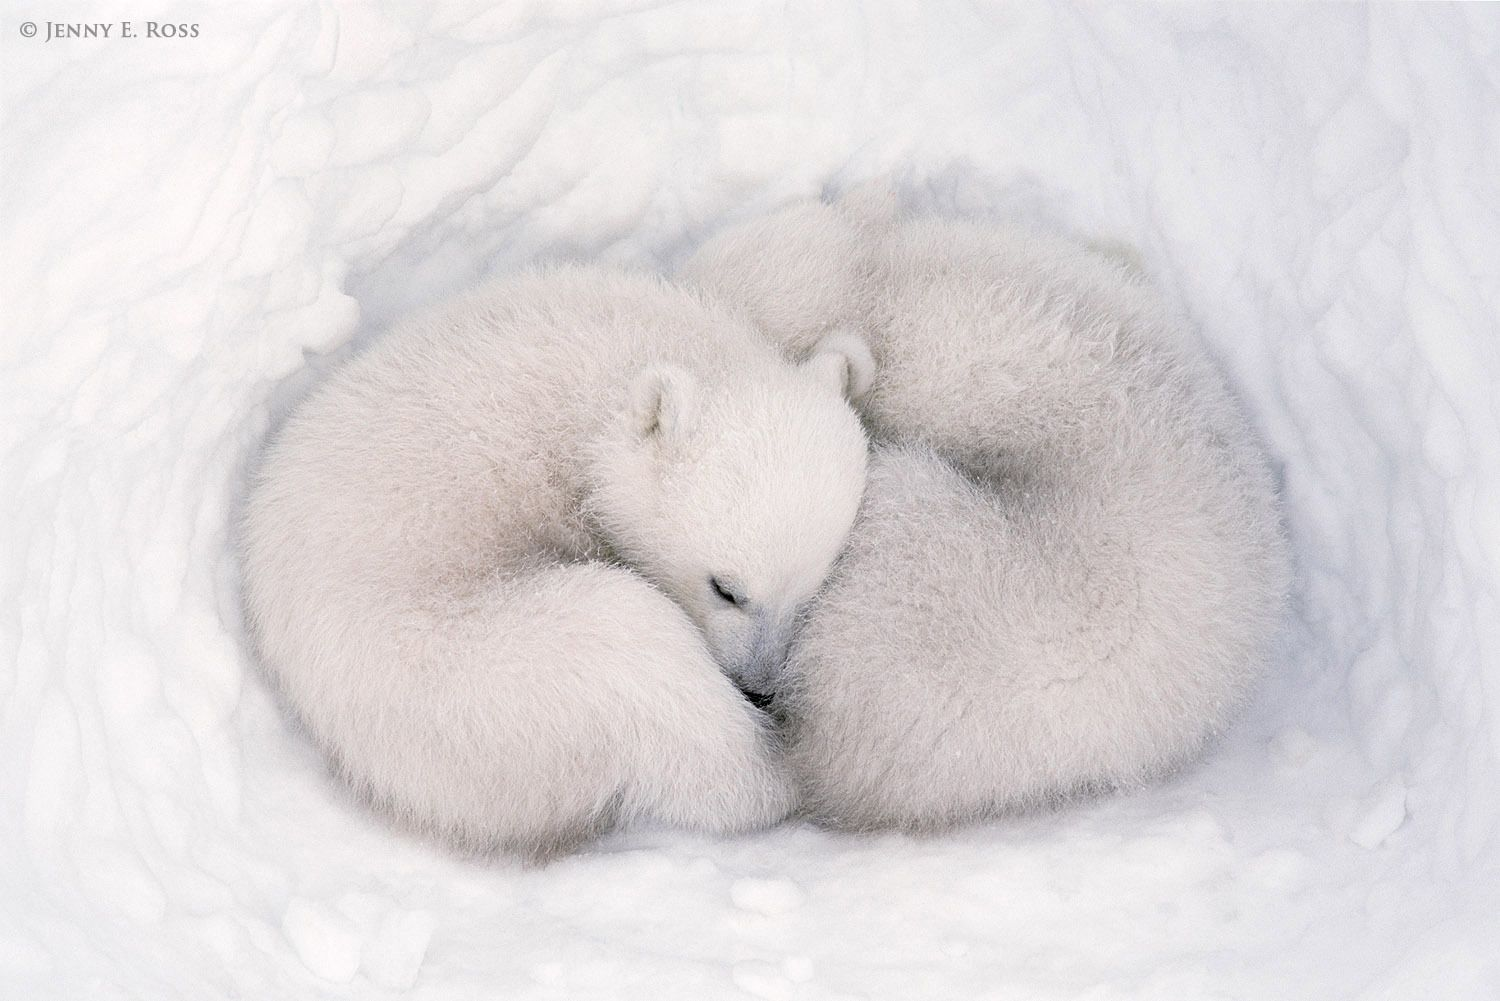 Twin polar bear cubs, about three months old, inside a snow den.